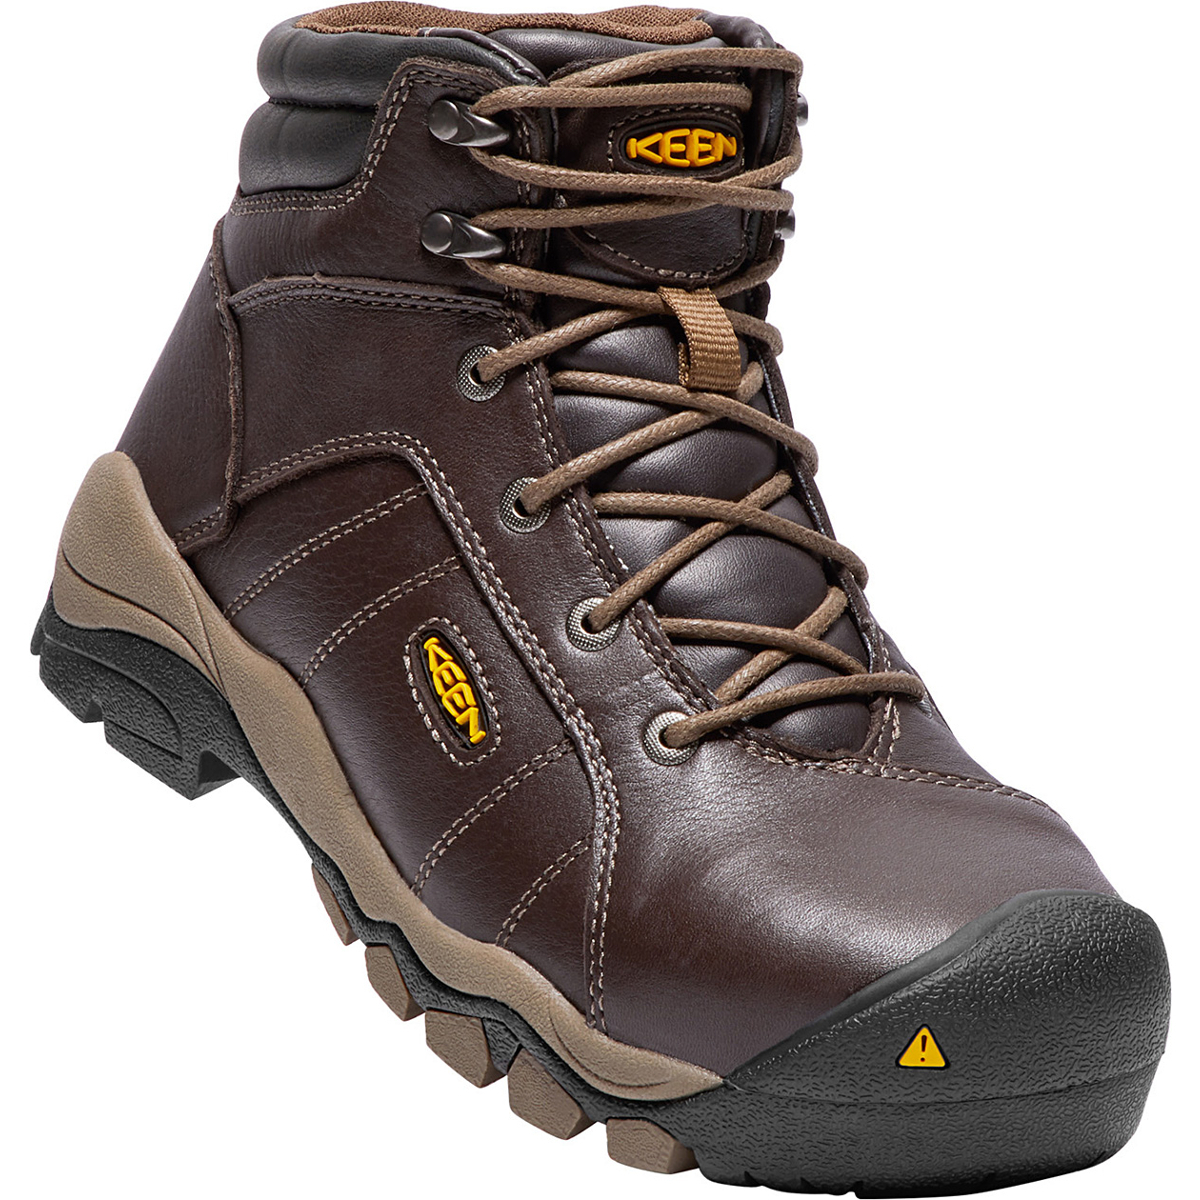 "Keen Women's Santa Fe 6"" Aluminum Toe Boot - Brown, 9"